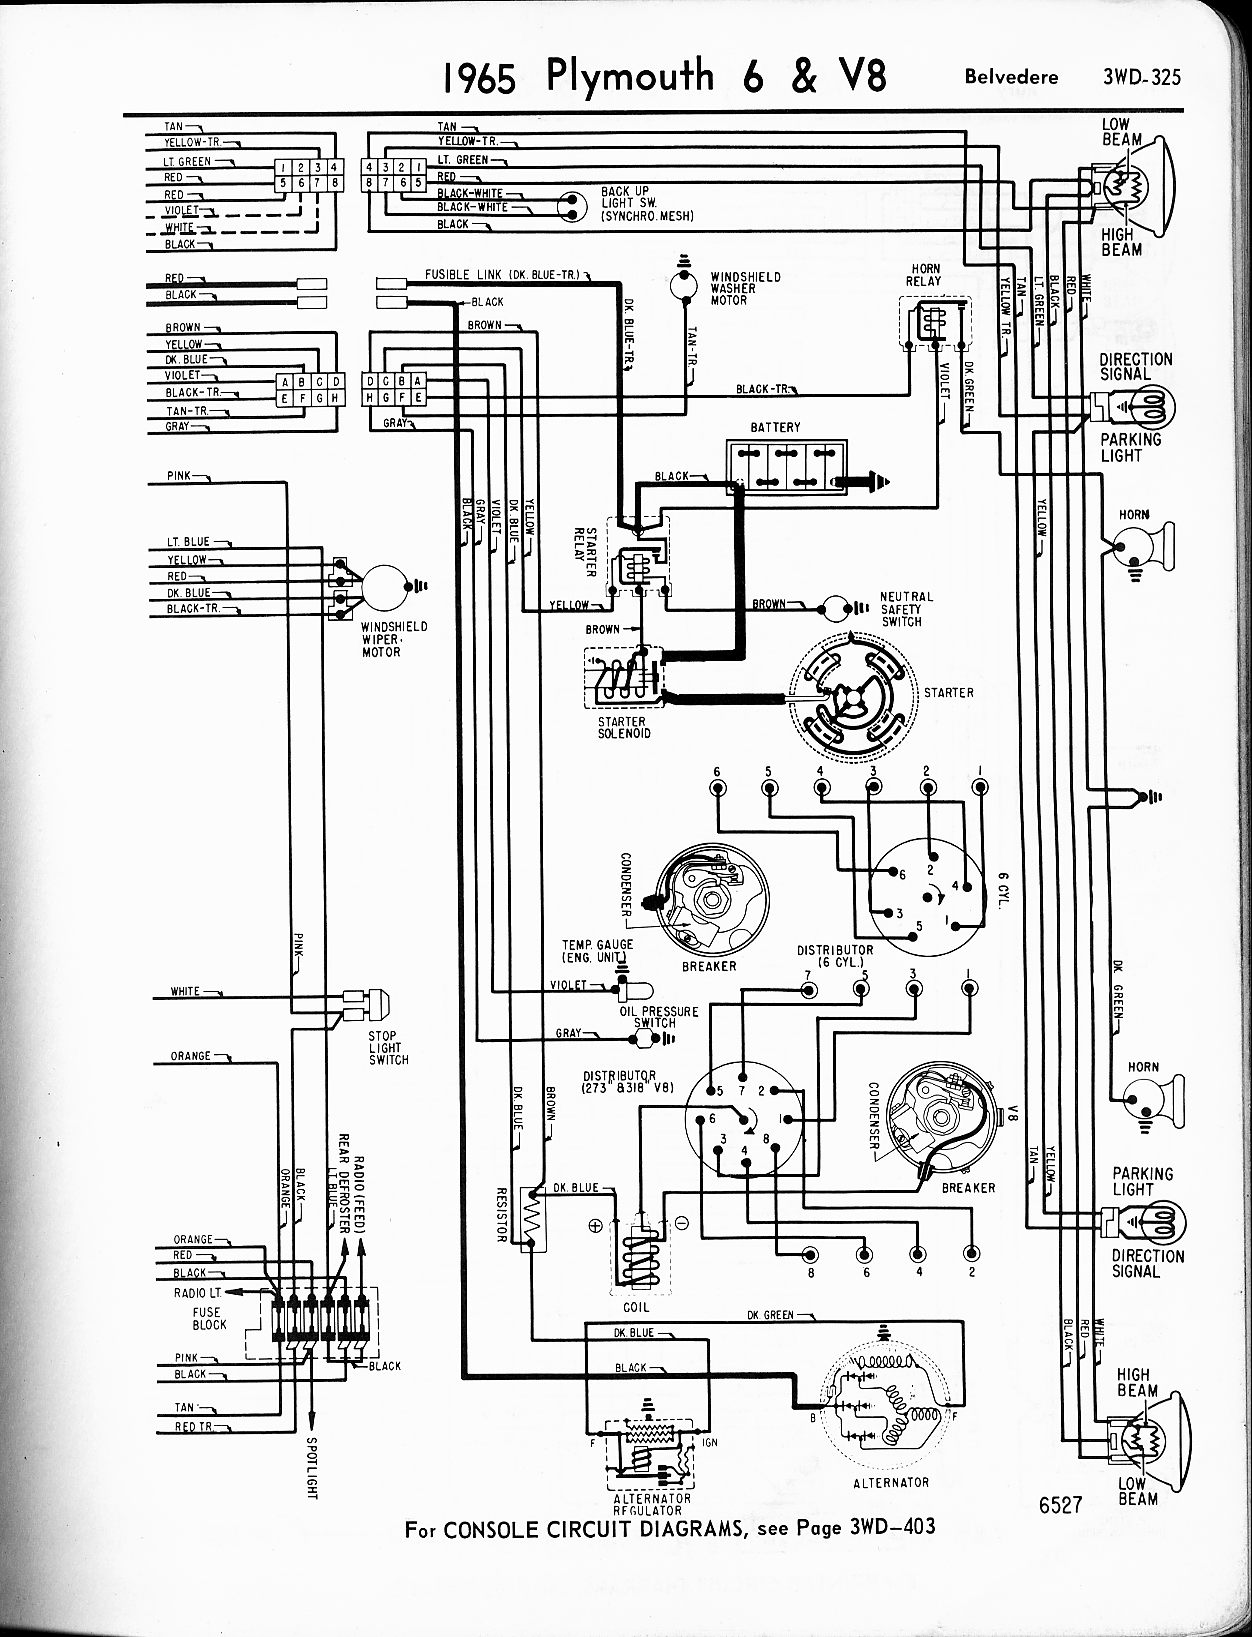 1 Wire Alternator Wiring Diagram For 1970 Chevy Truck Bulkhead Schematic Chevrolet C10 Camaro Dash Free Engine Image